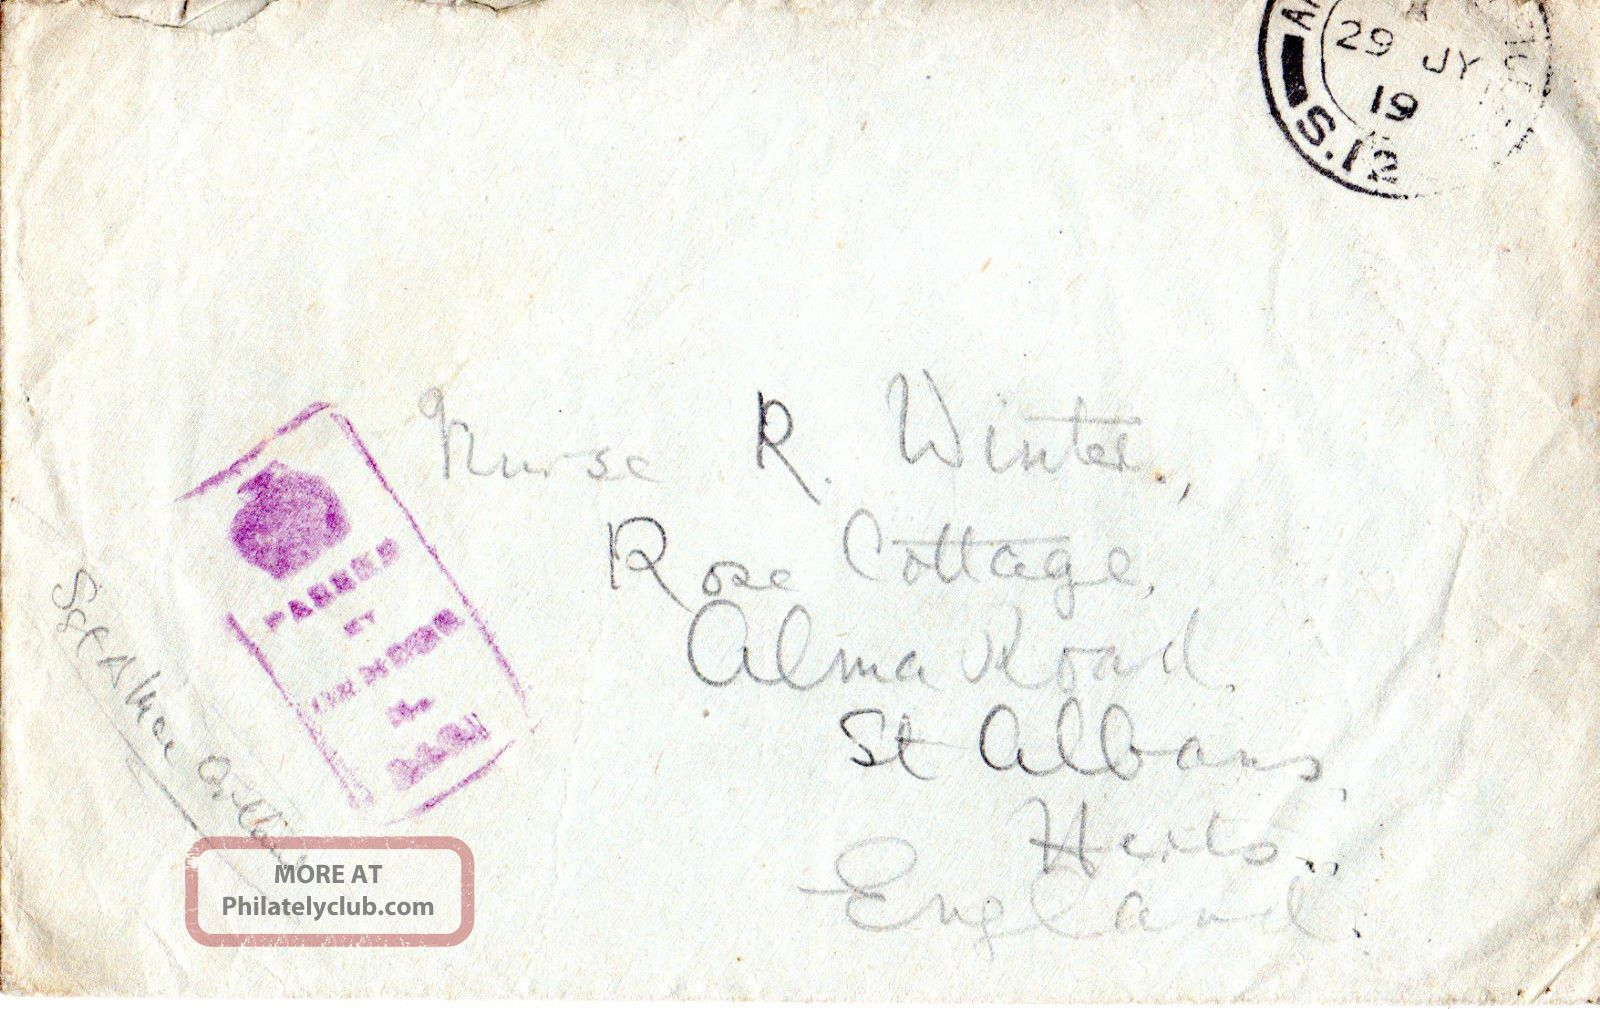 Gb 29 July 1919 World War 1 Soldiers Post Envelope Field Post Office & Censor Topical Stamps photo